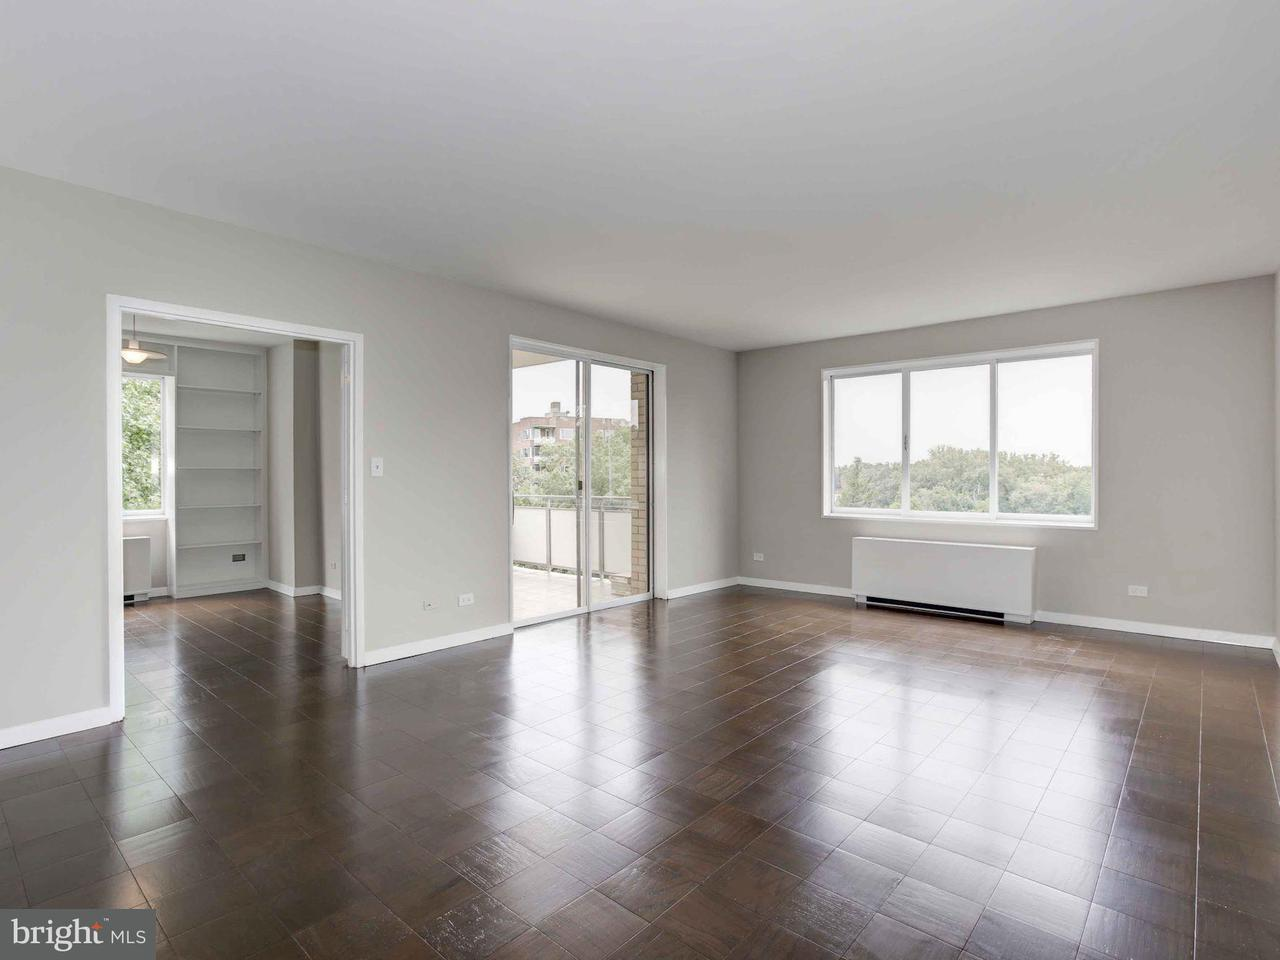 Additional photo for property listing at 2801 New Mexico Ave NW #504  Washington, District Of Columbia 20007 United States